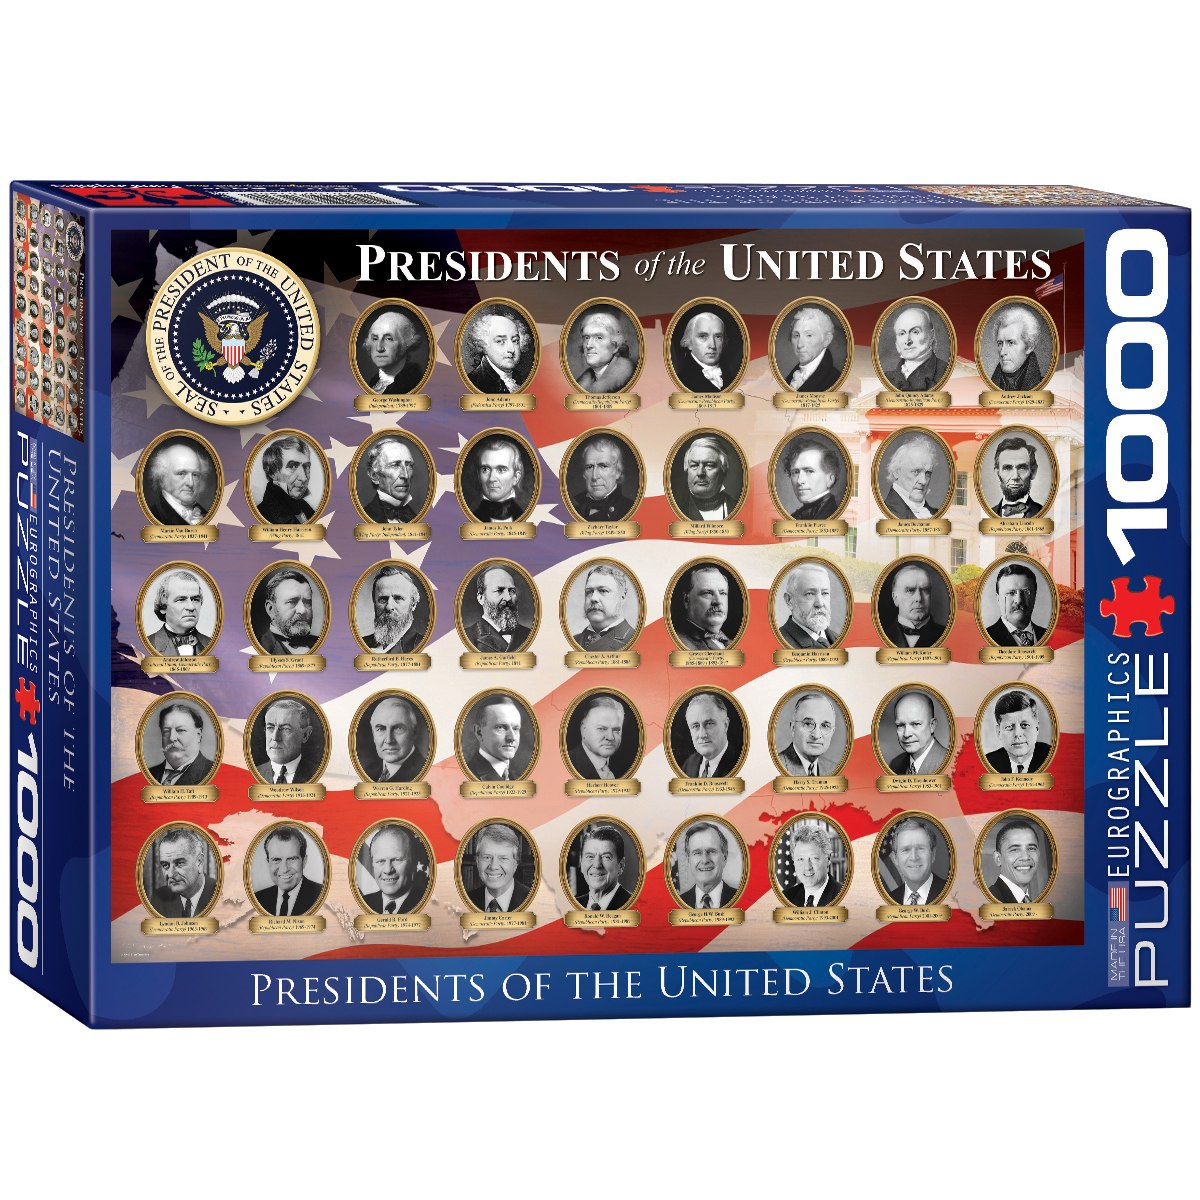 US Presidents - 1000pc Jigsaw Puzzle by Eurographics